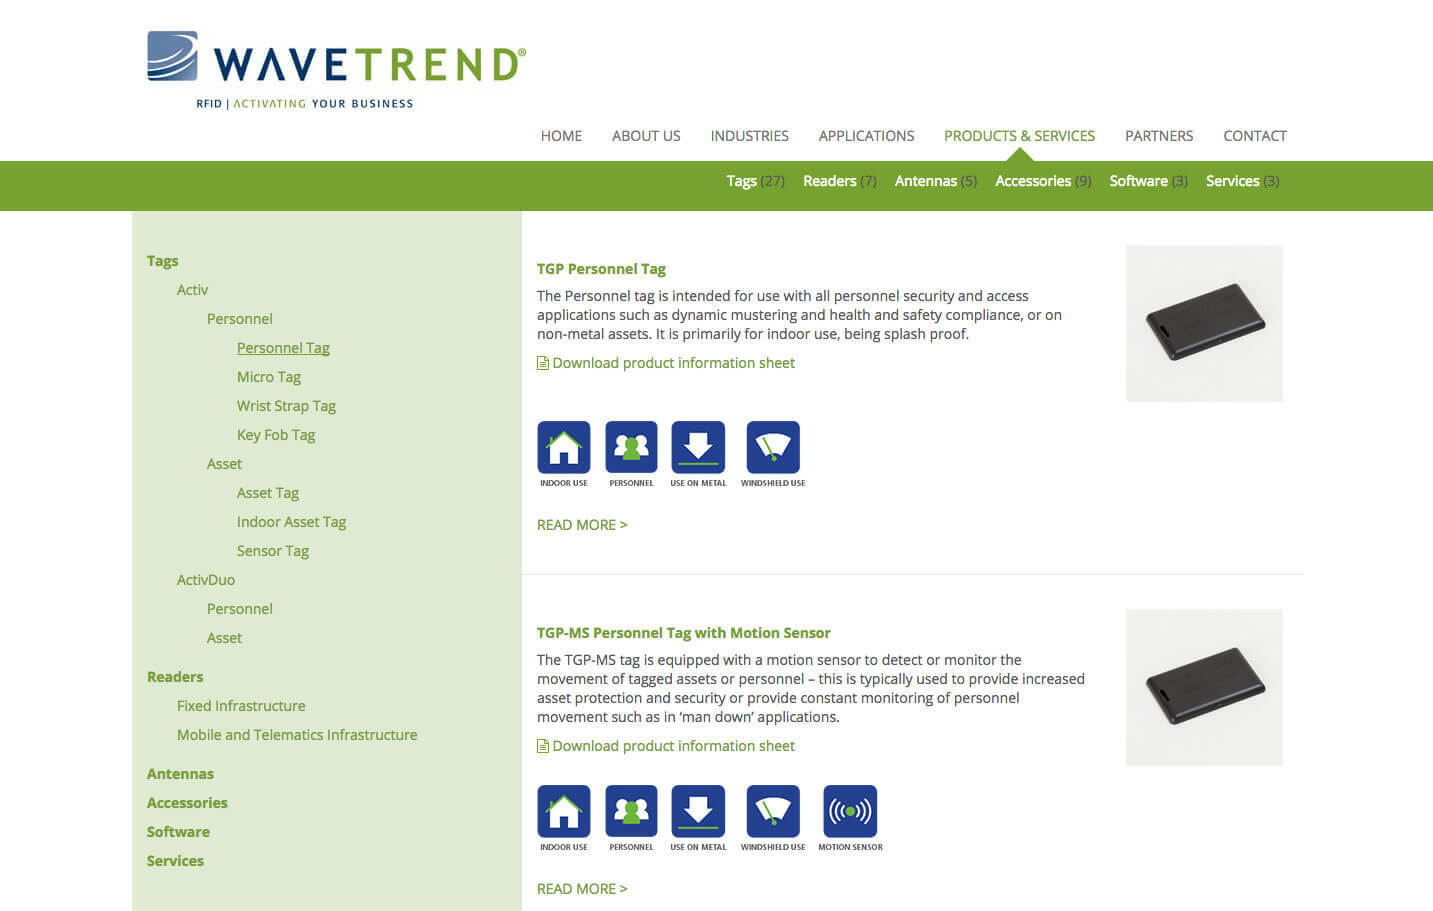 Wavetrend - Products page